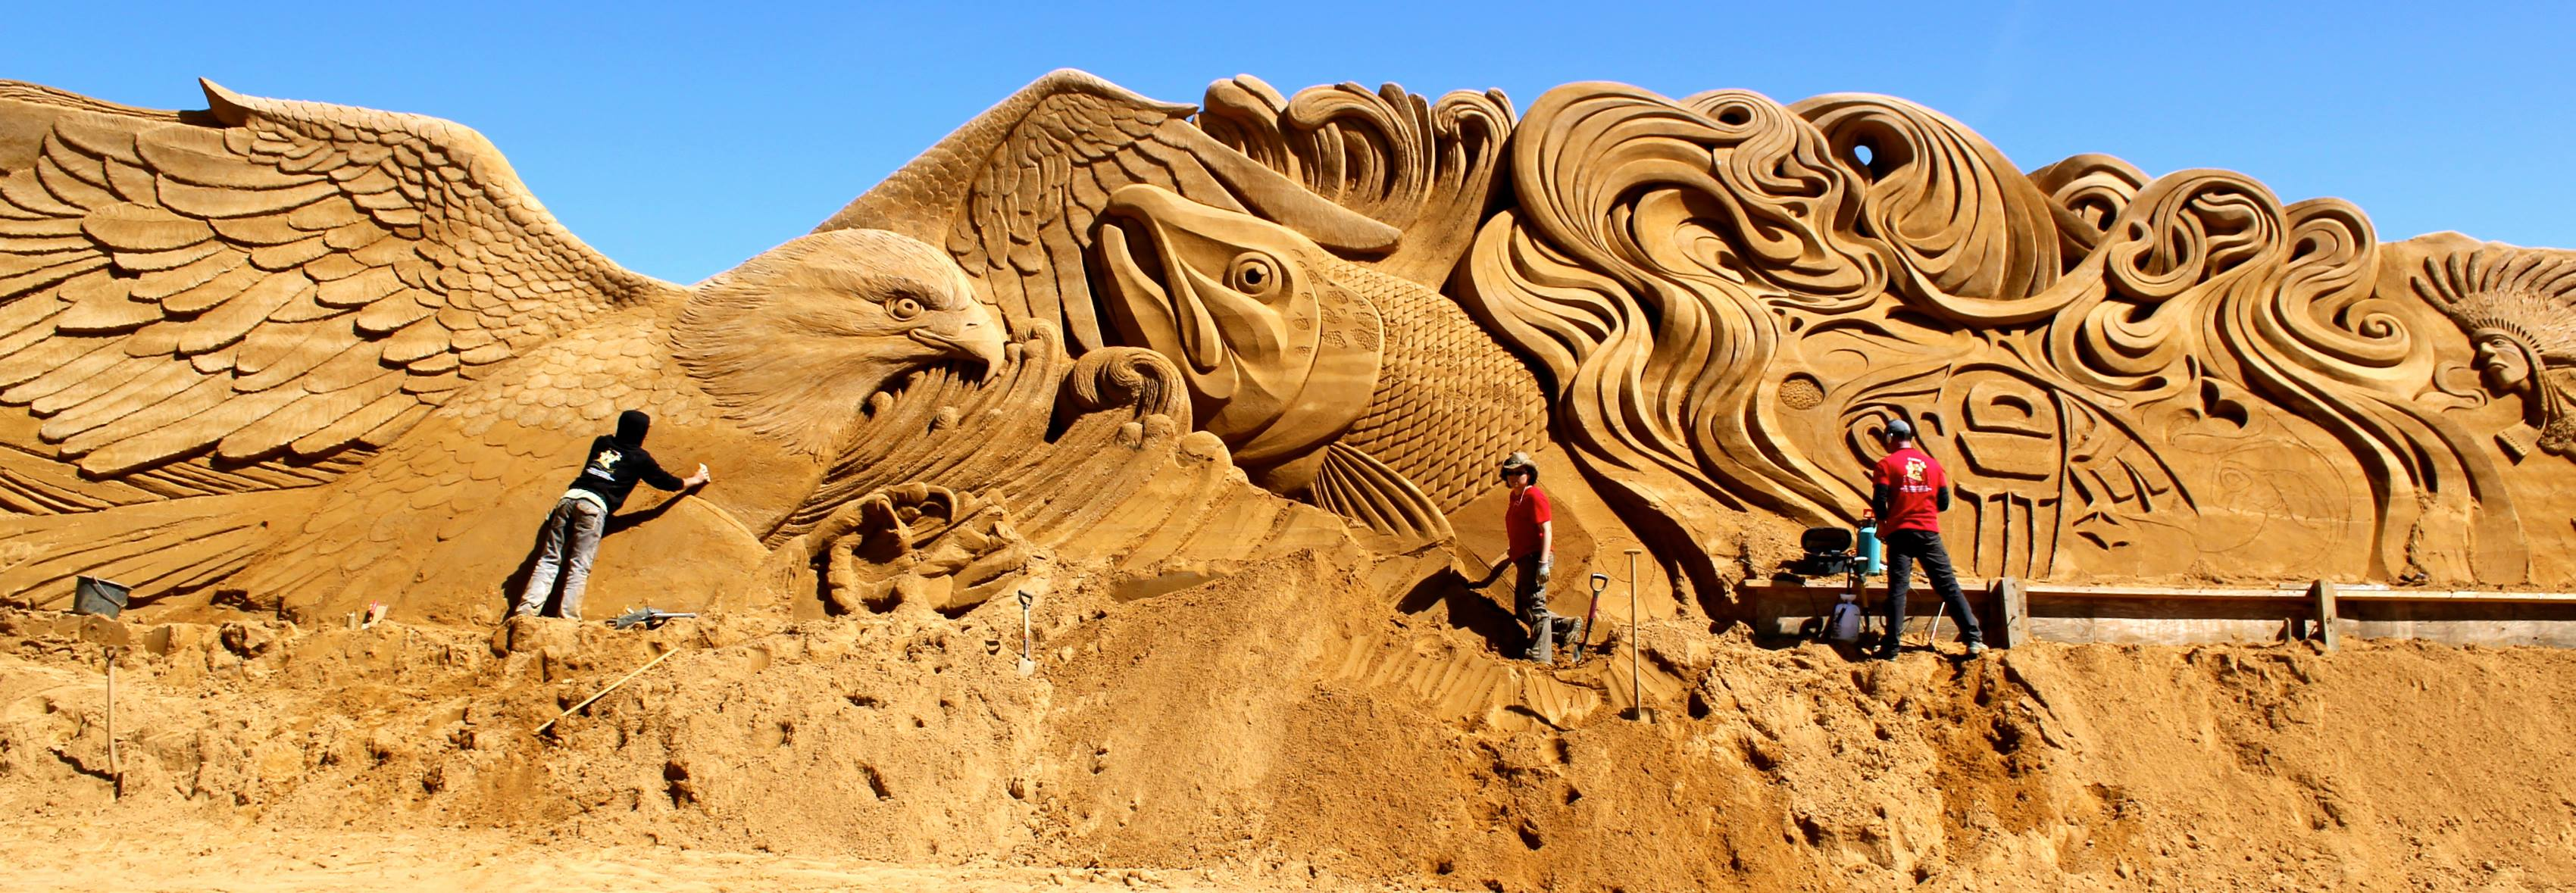 The Sands of Summer – Top Sand Sculpting Competitors and Competitions